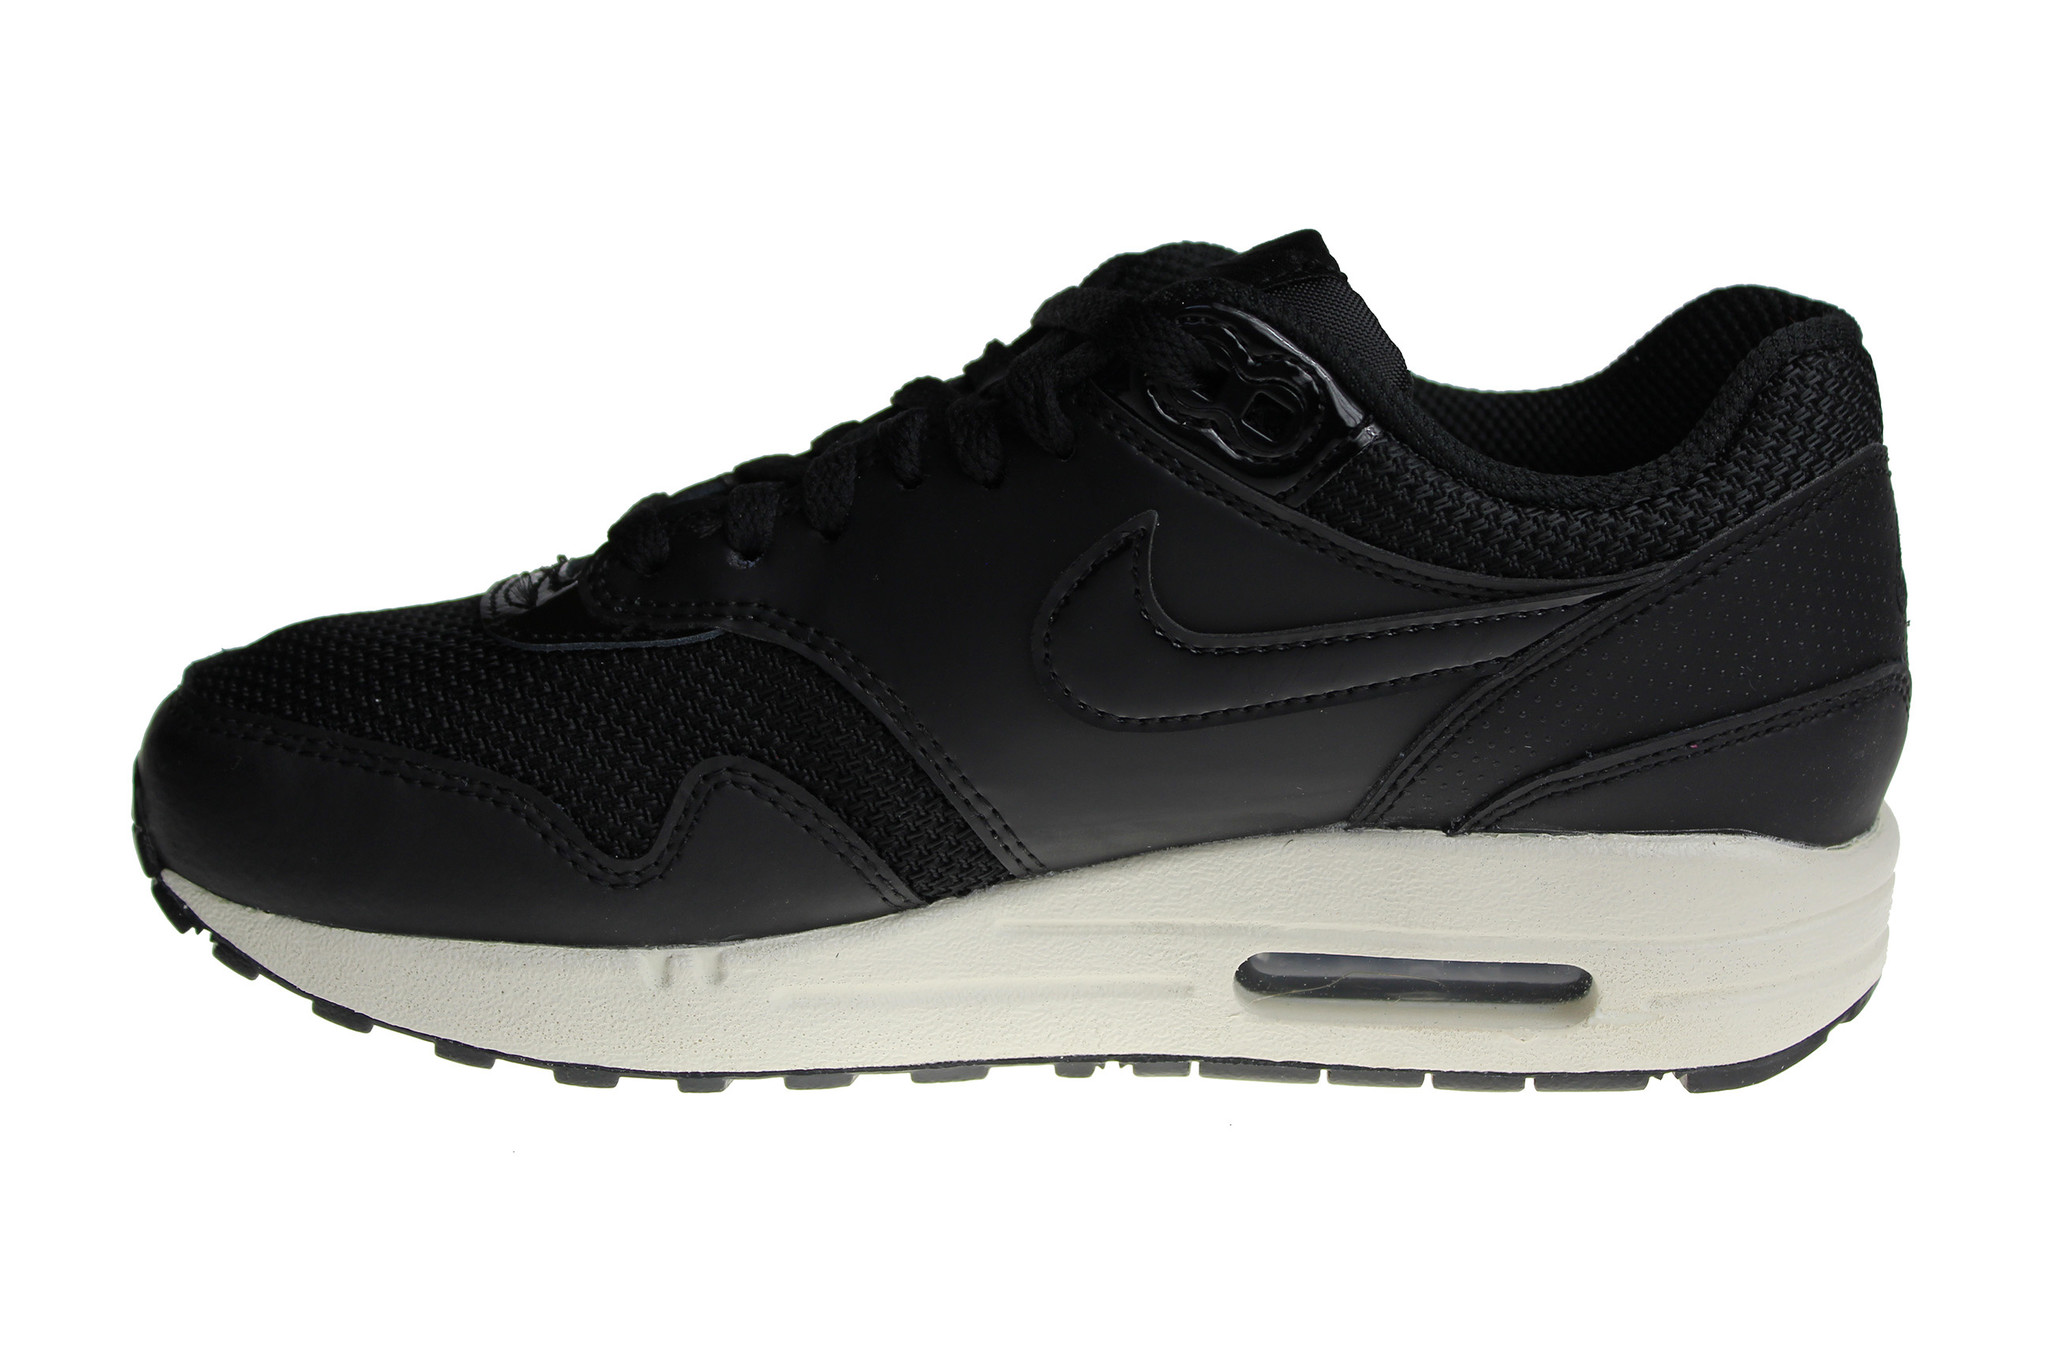 new styles fd8ad 0586f Nike Wmns Air Max 1 Black Off-White 319986 039 Women s Sneakers